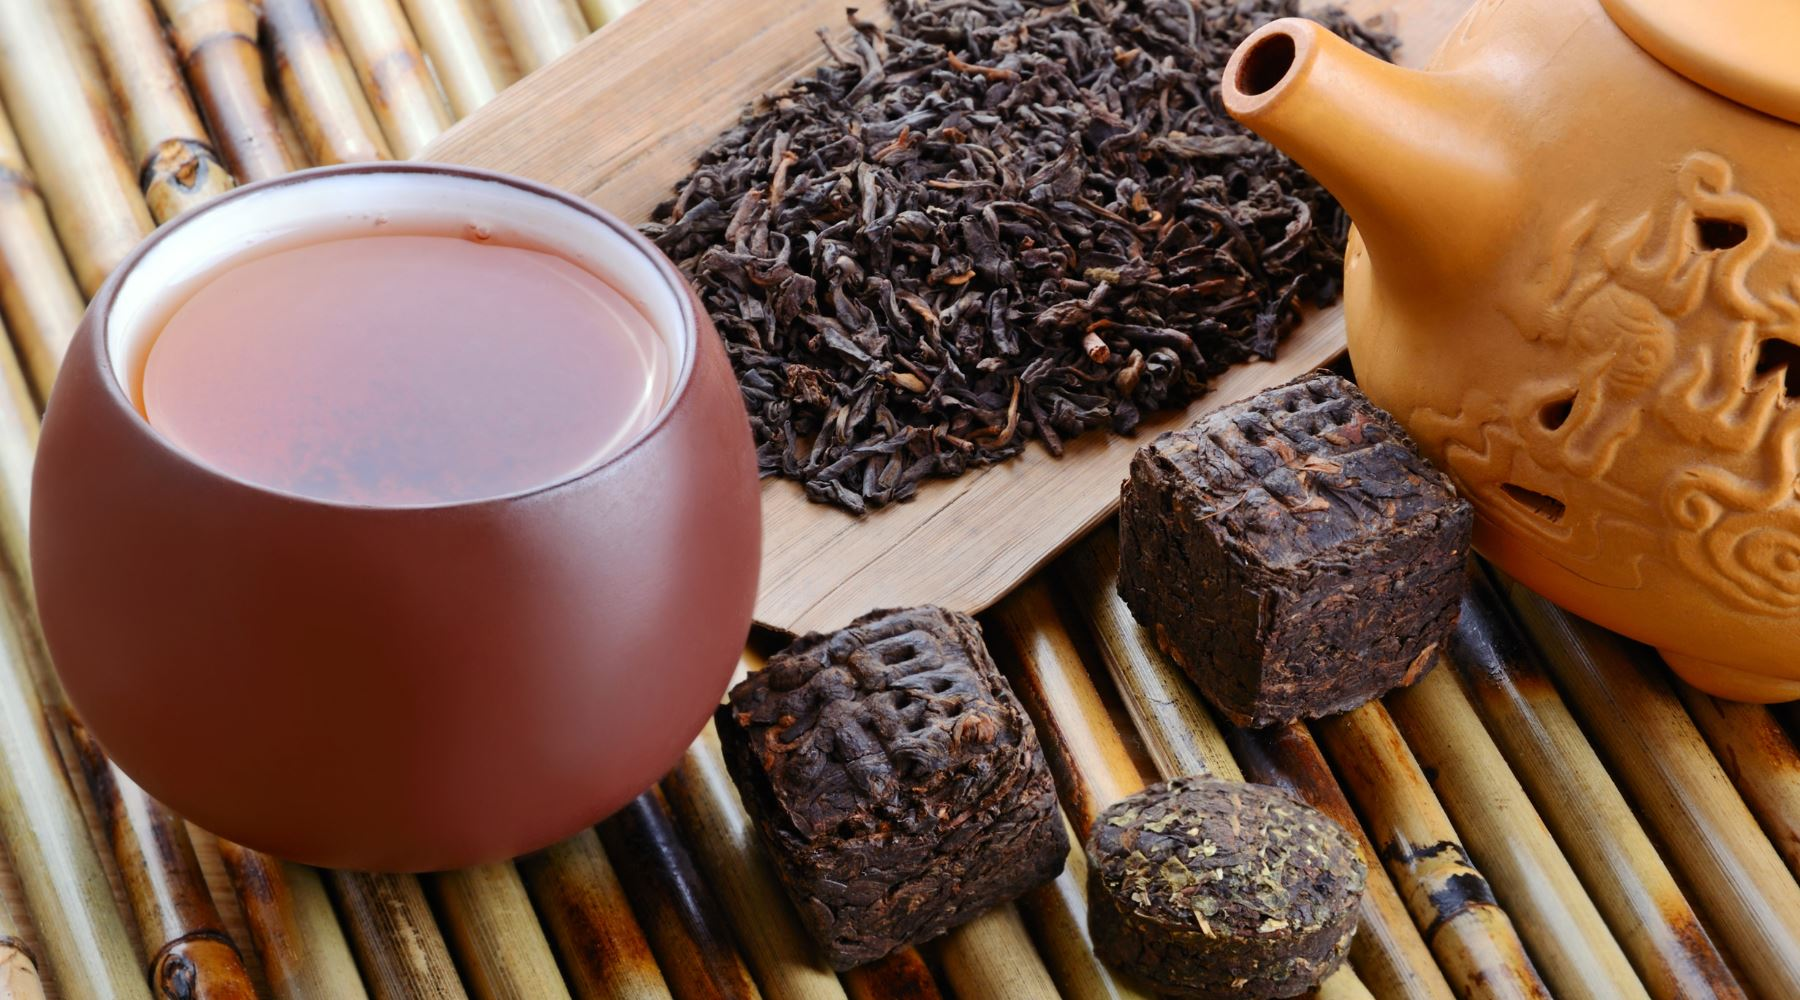 Pu-erh Tea: 10 Health Benefits You Should Know About